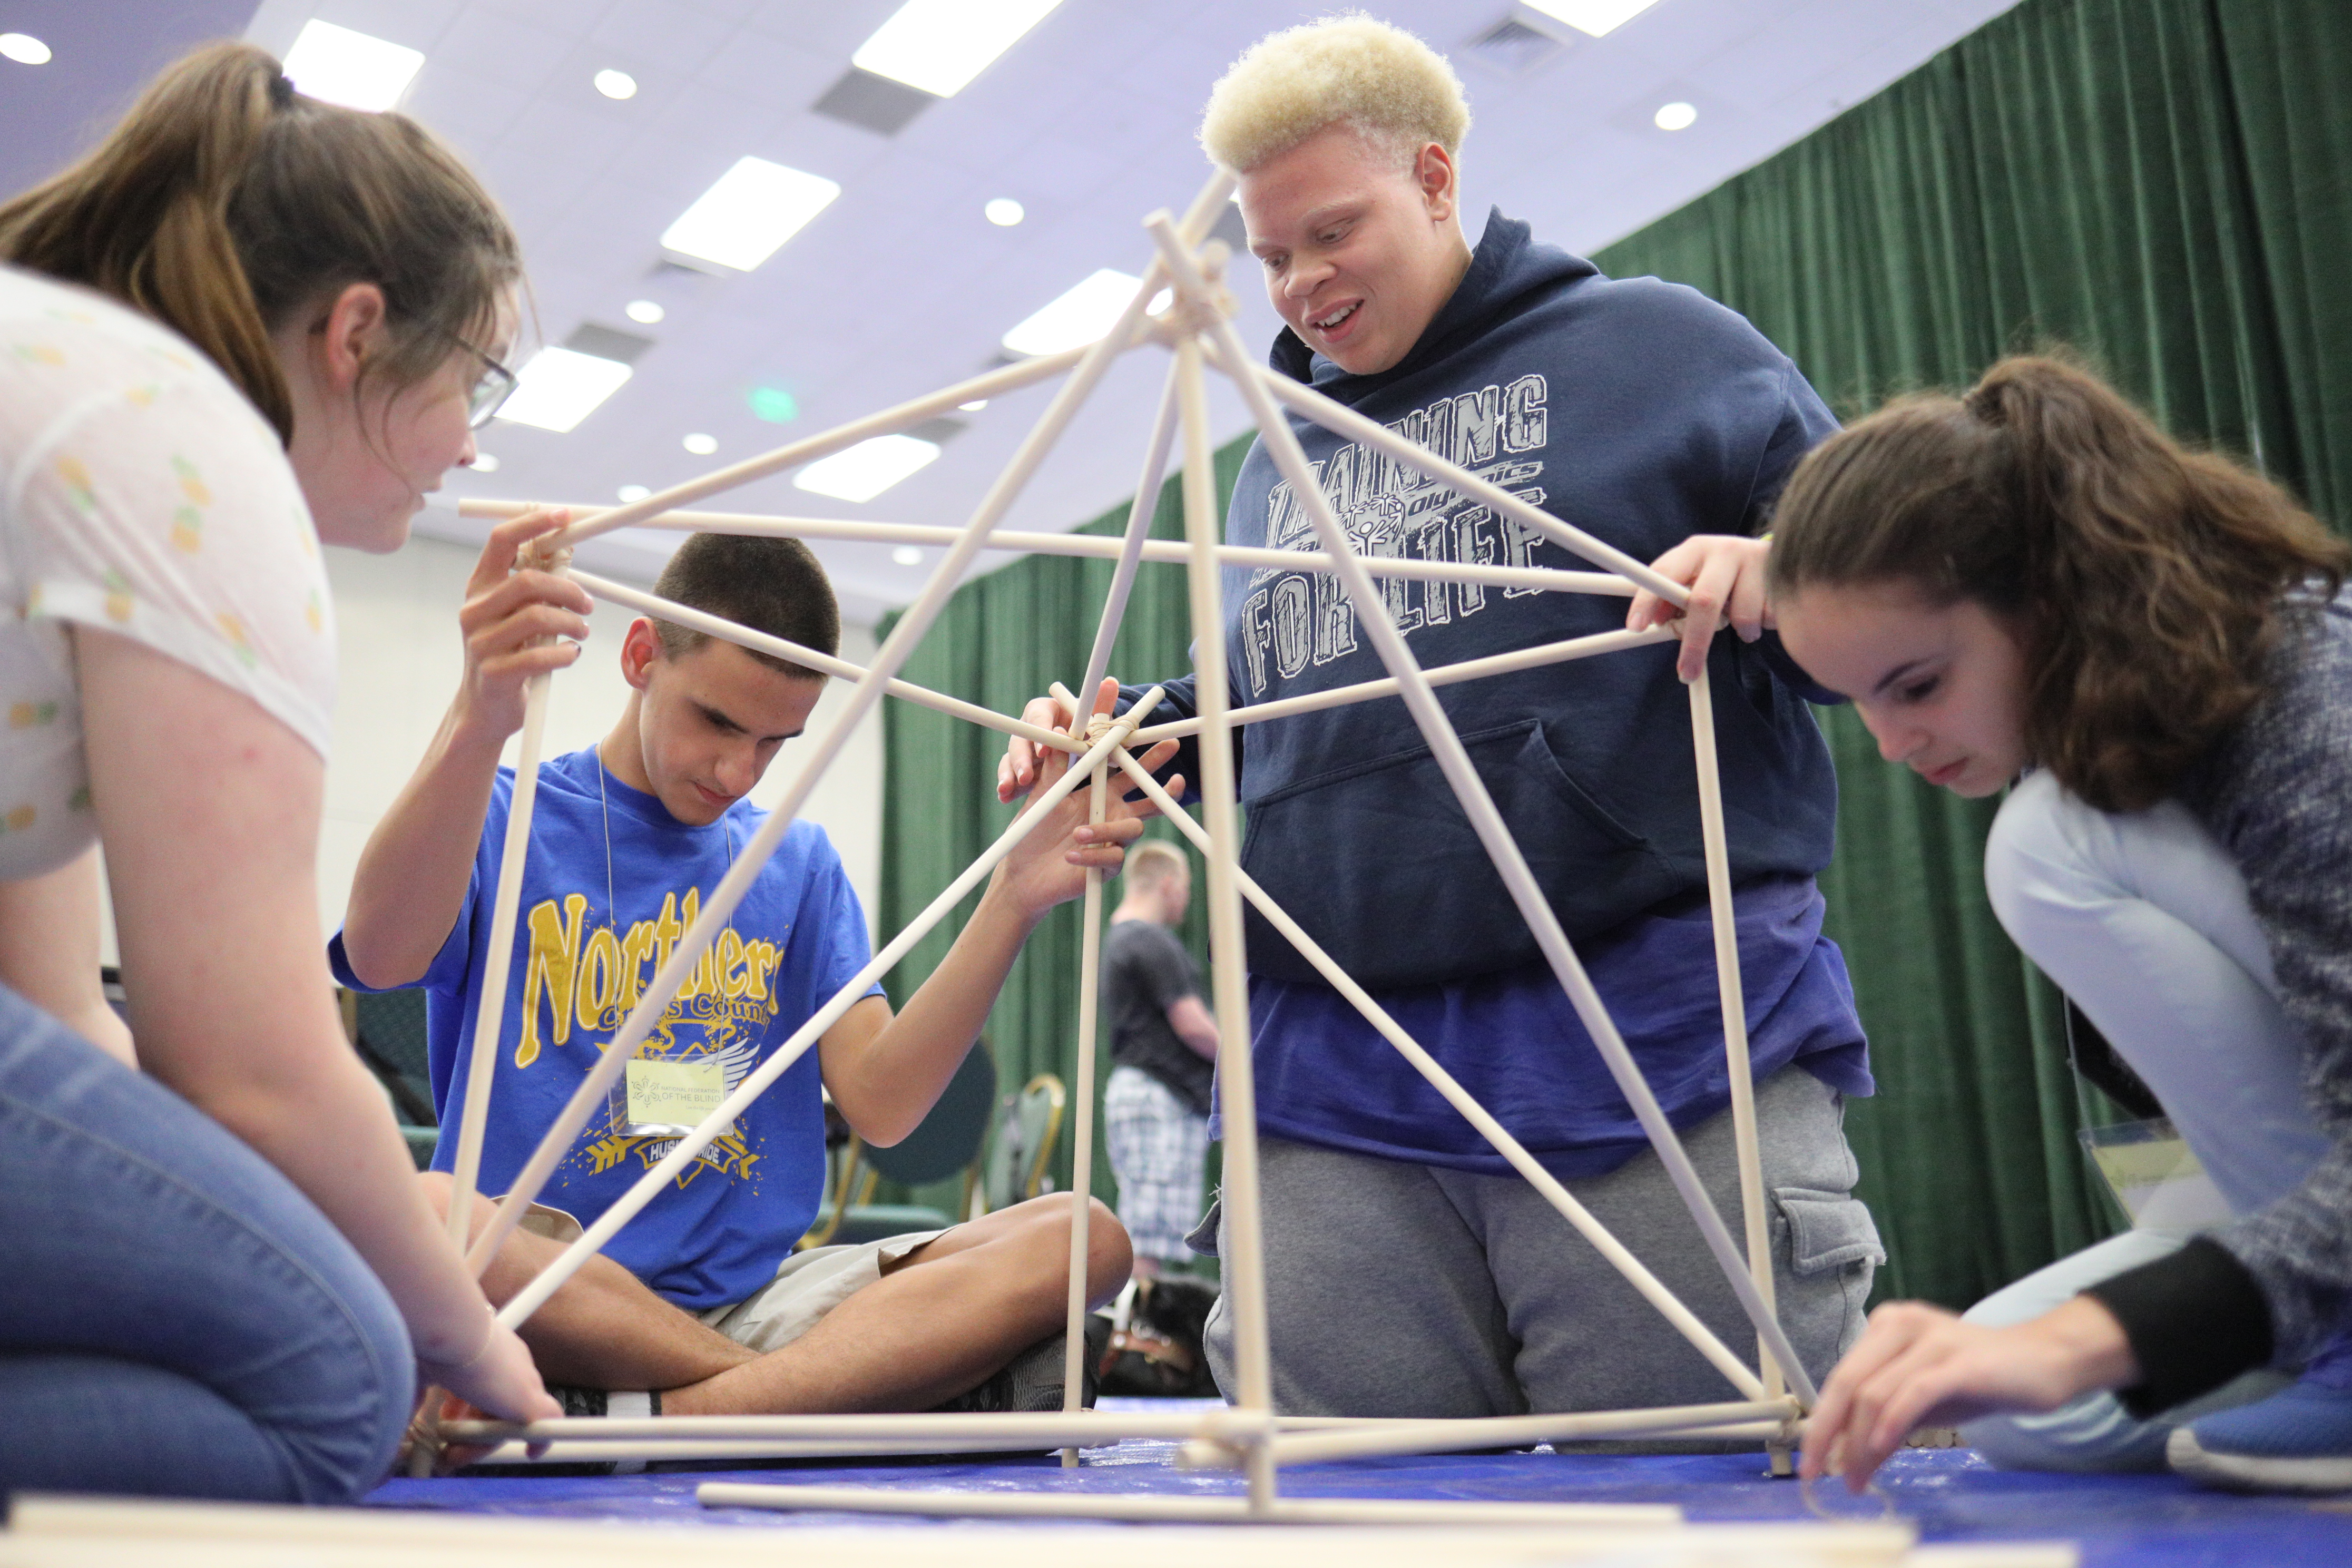 Photo of students working together to build a structure out of large wooden dowels.